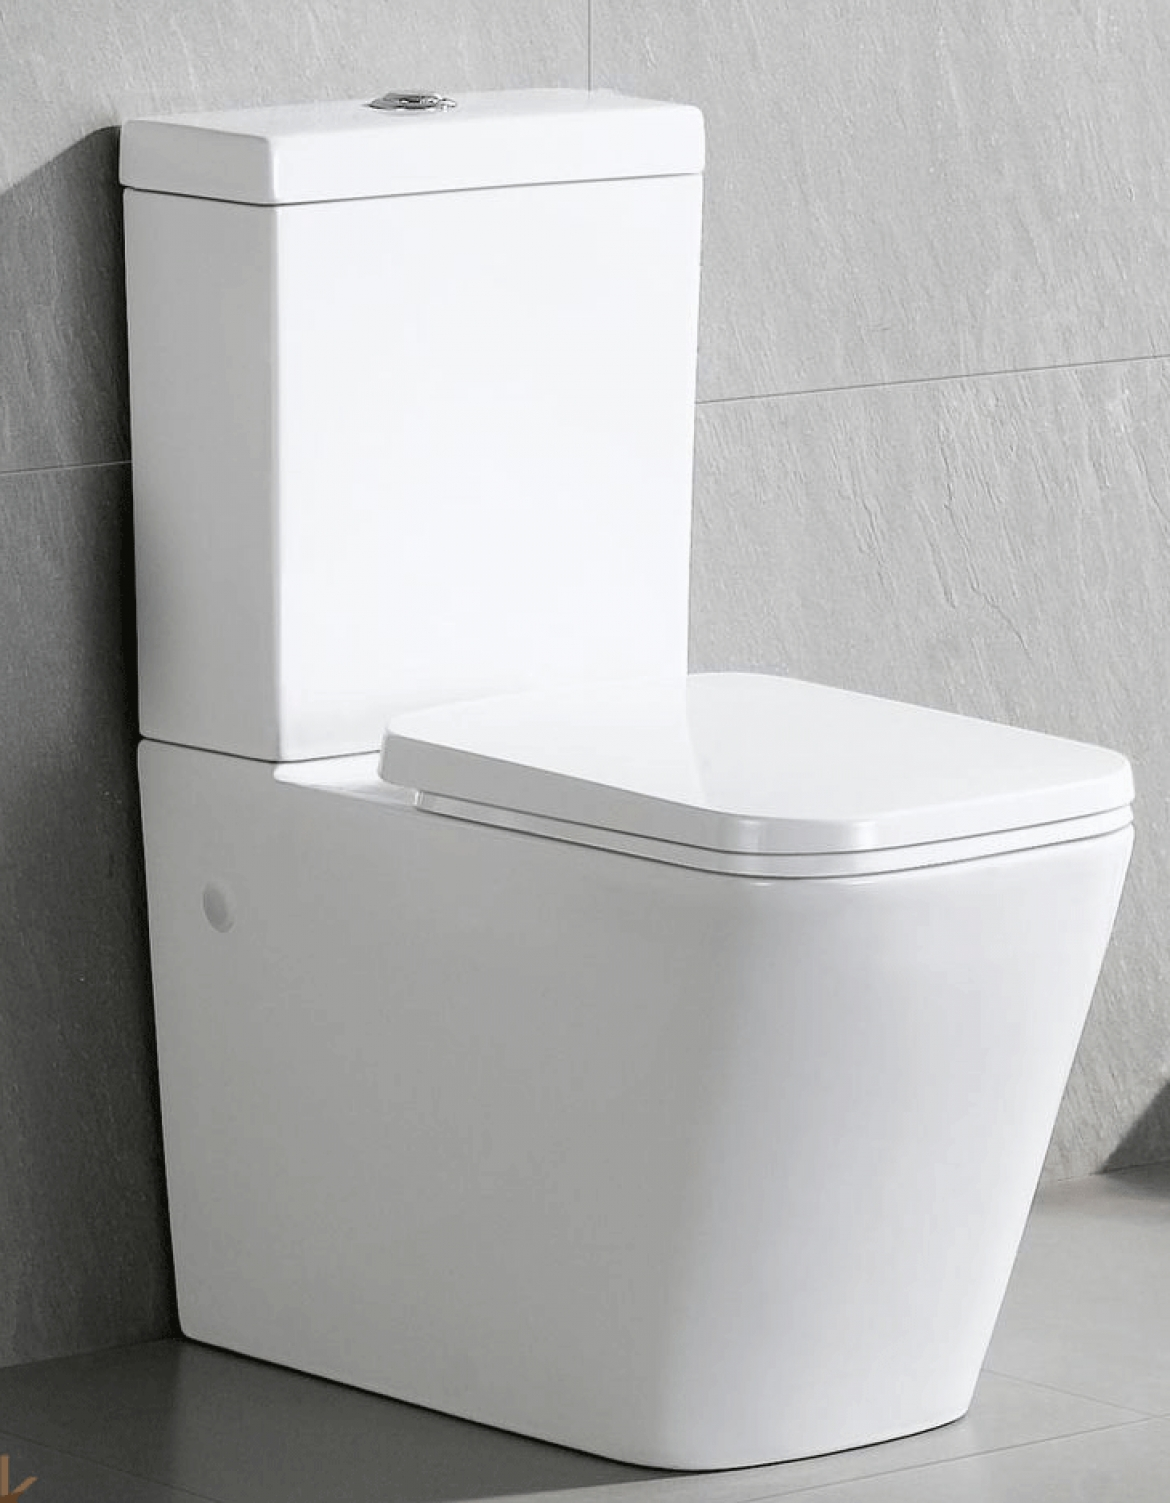 Bathroom Ceramic Square Toilet suite  L01804